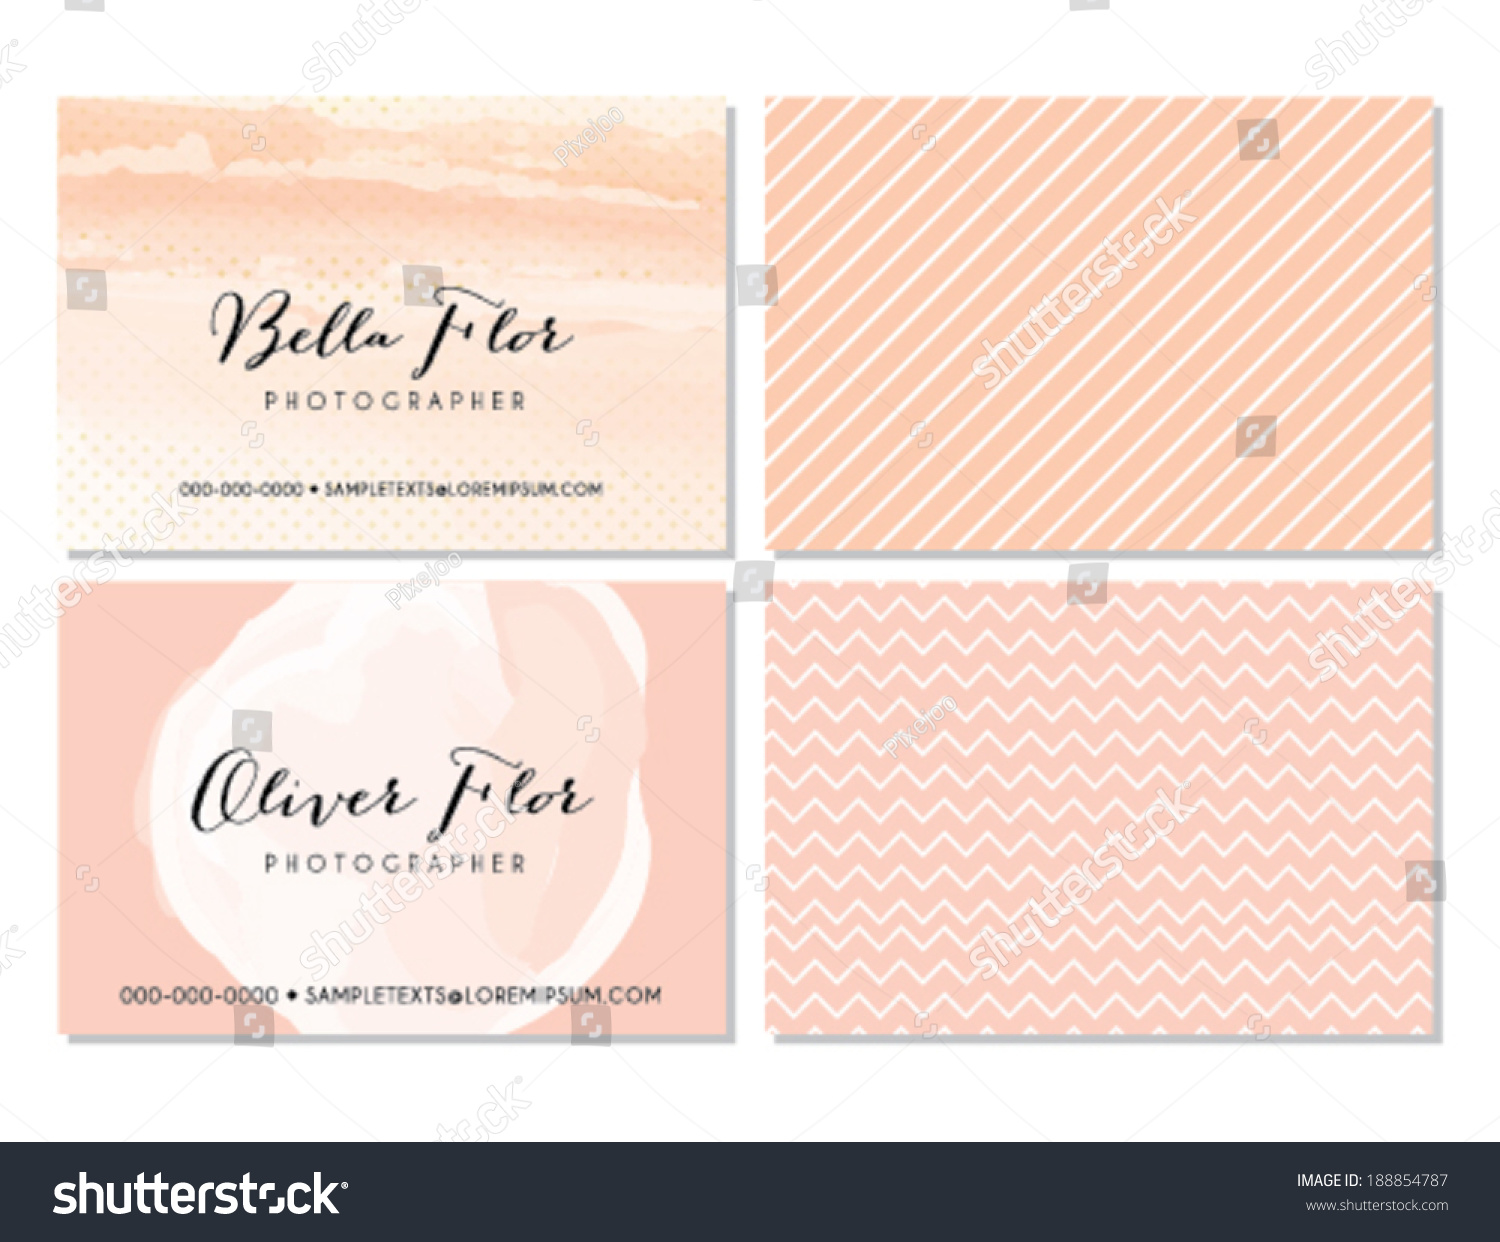 Pink business card template stock vector hd royalty free 188854787 pink business card template wajeb Images